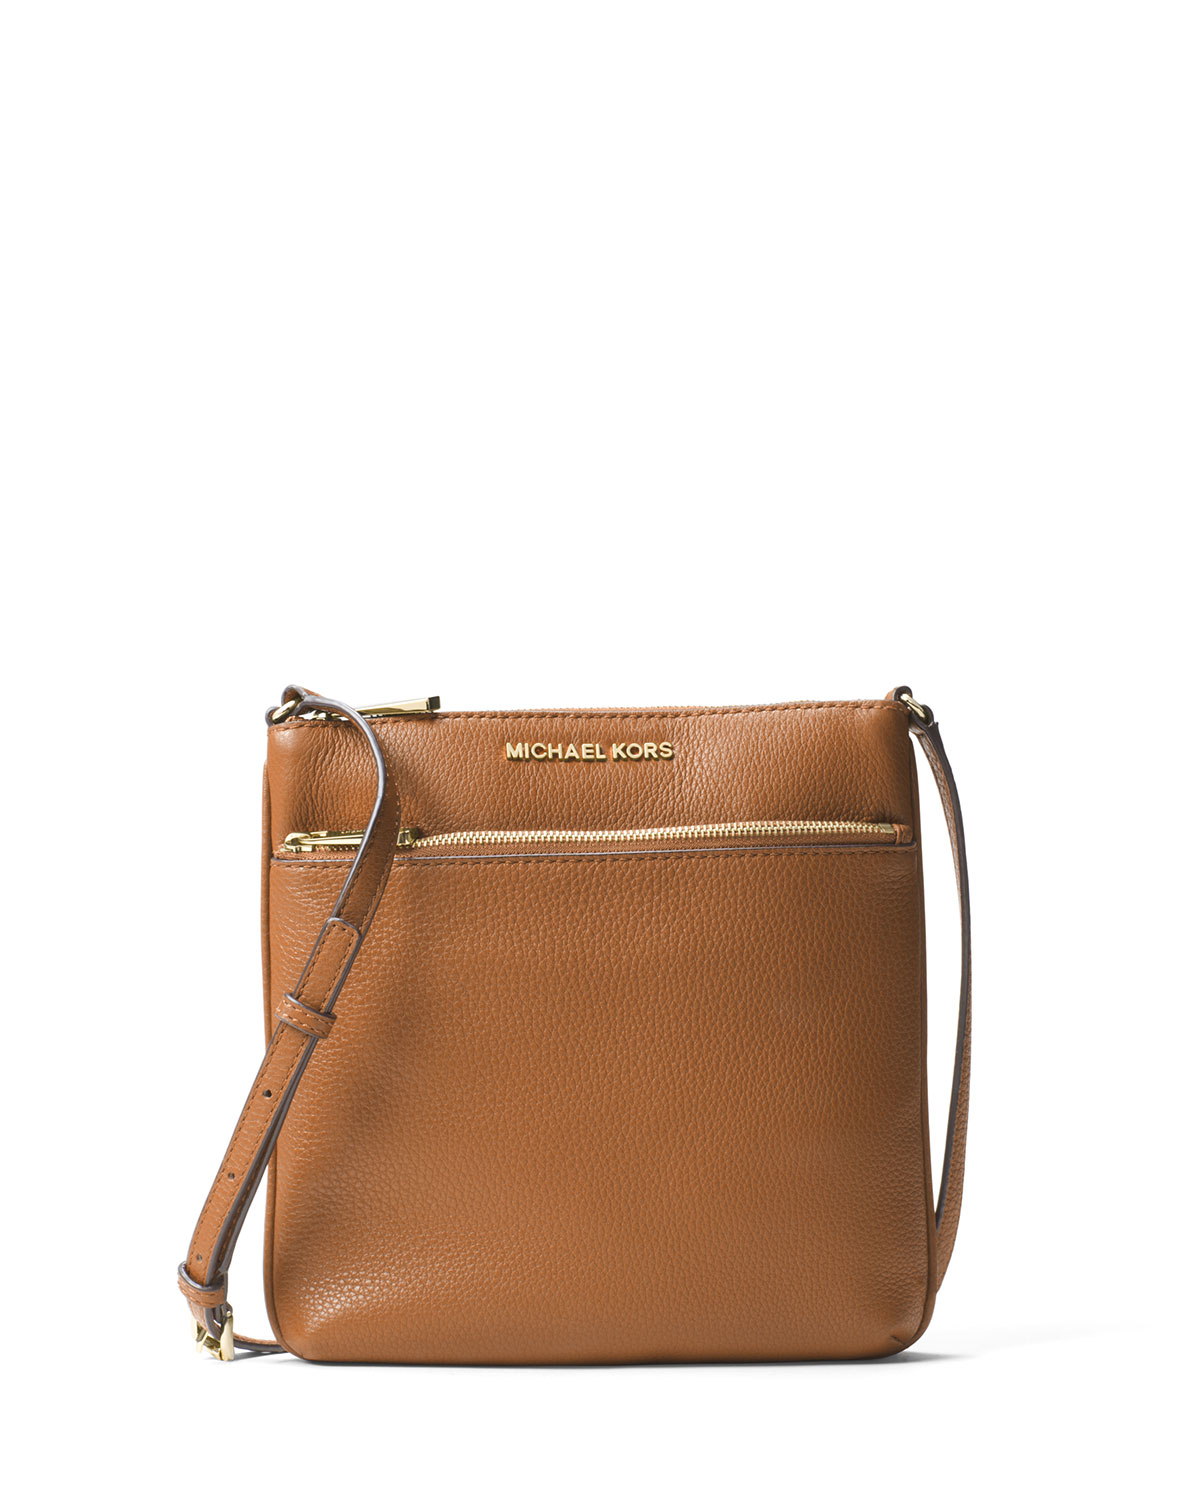 0746d8e213a7 MICHAEL Michael Kors Riley Small Leather Crossbody Bag